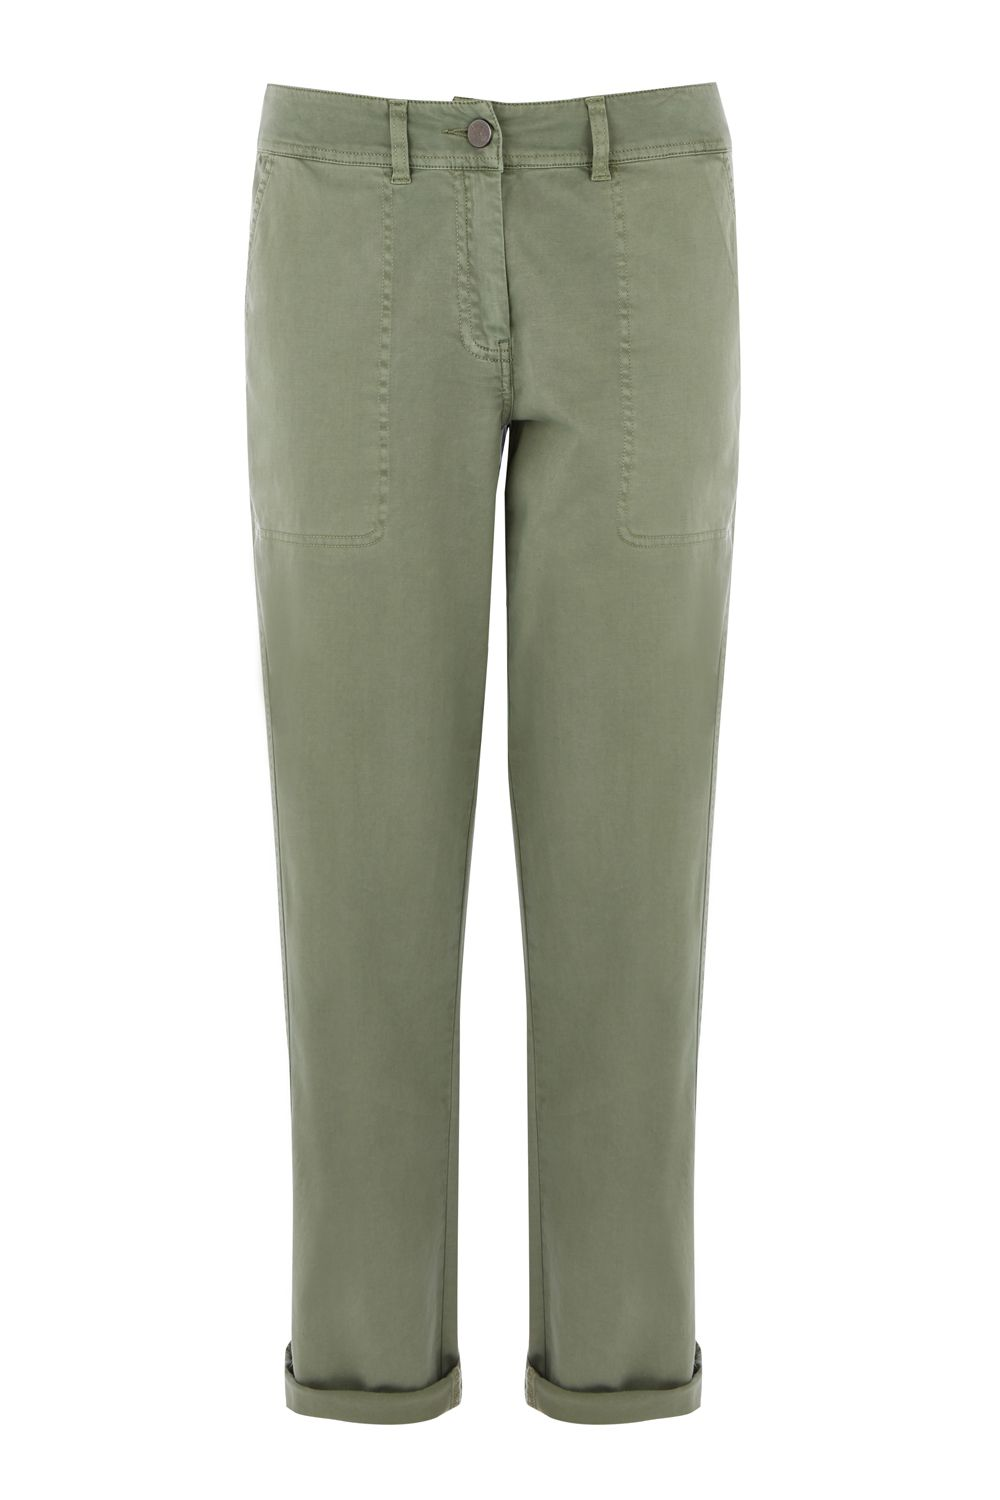 Oasis COTTON CARGO TROUSER, Khaki